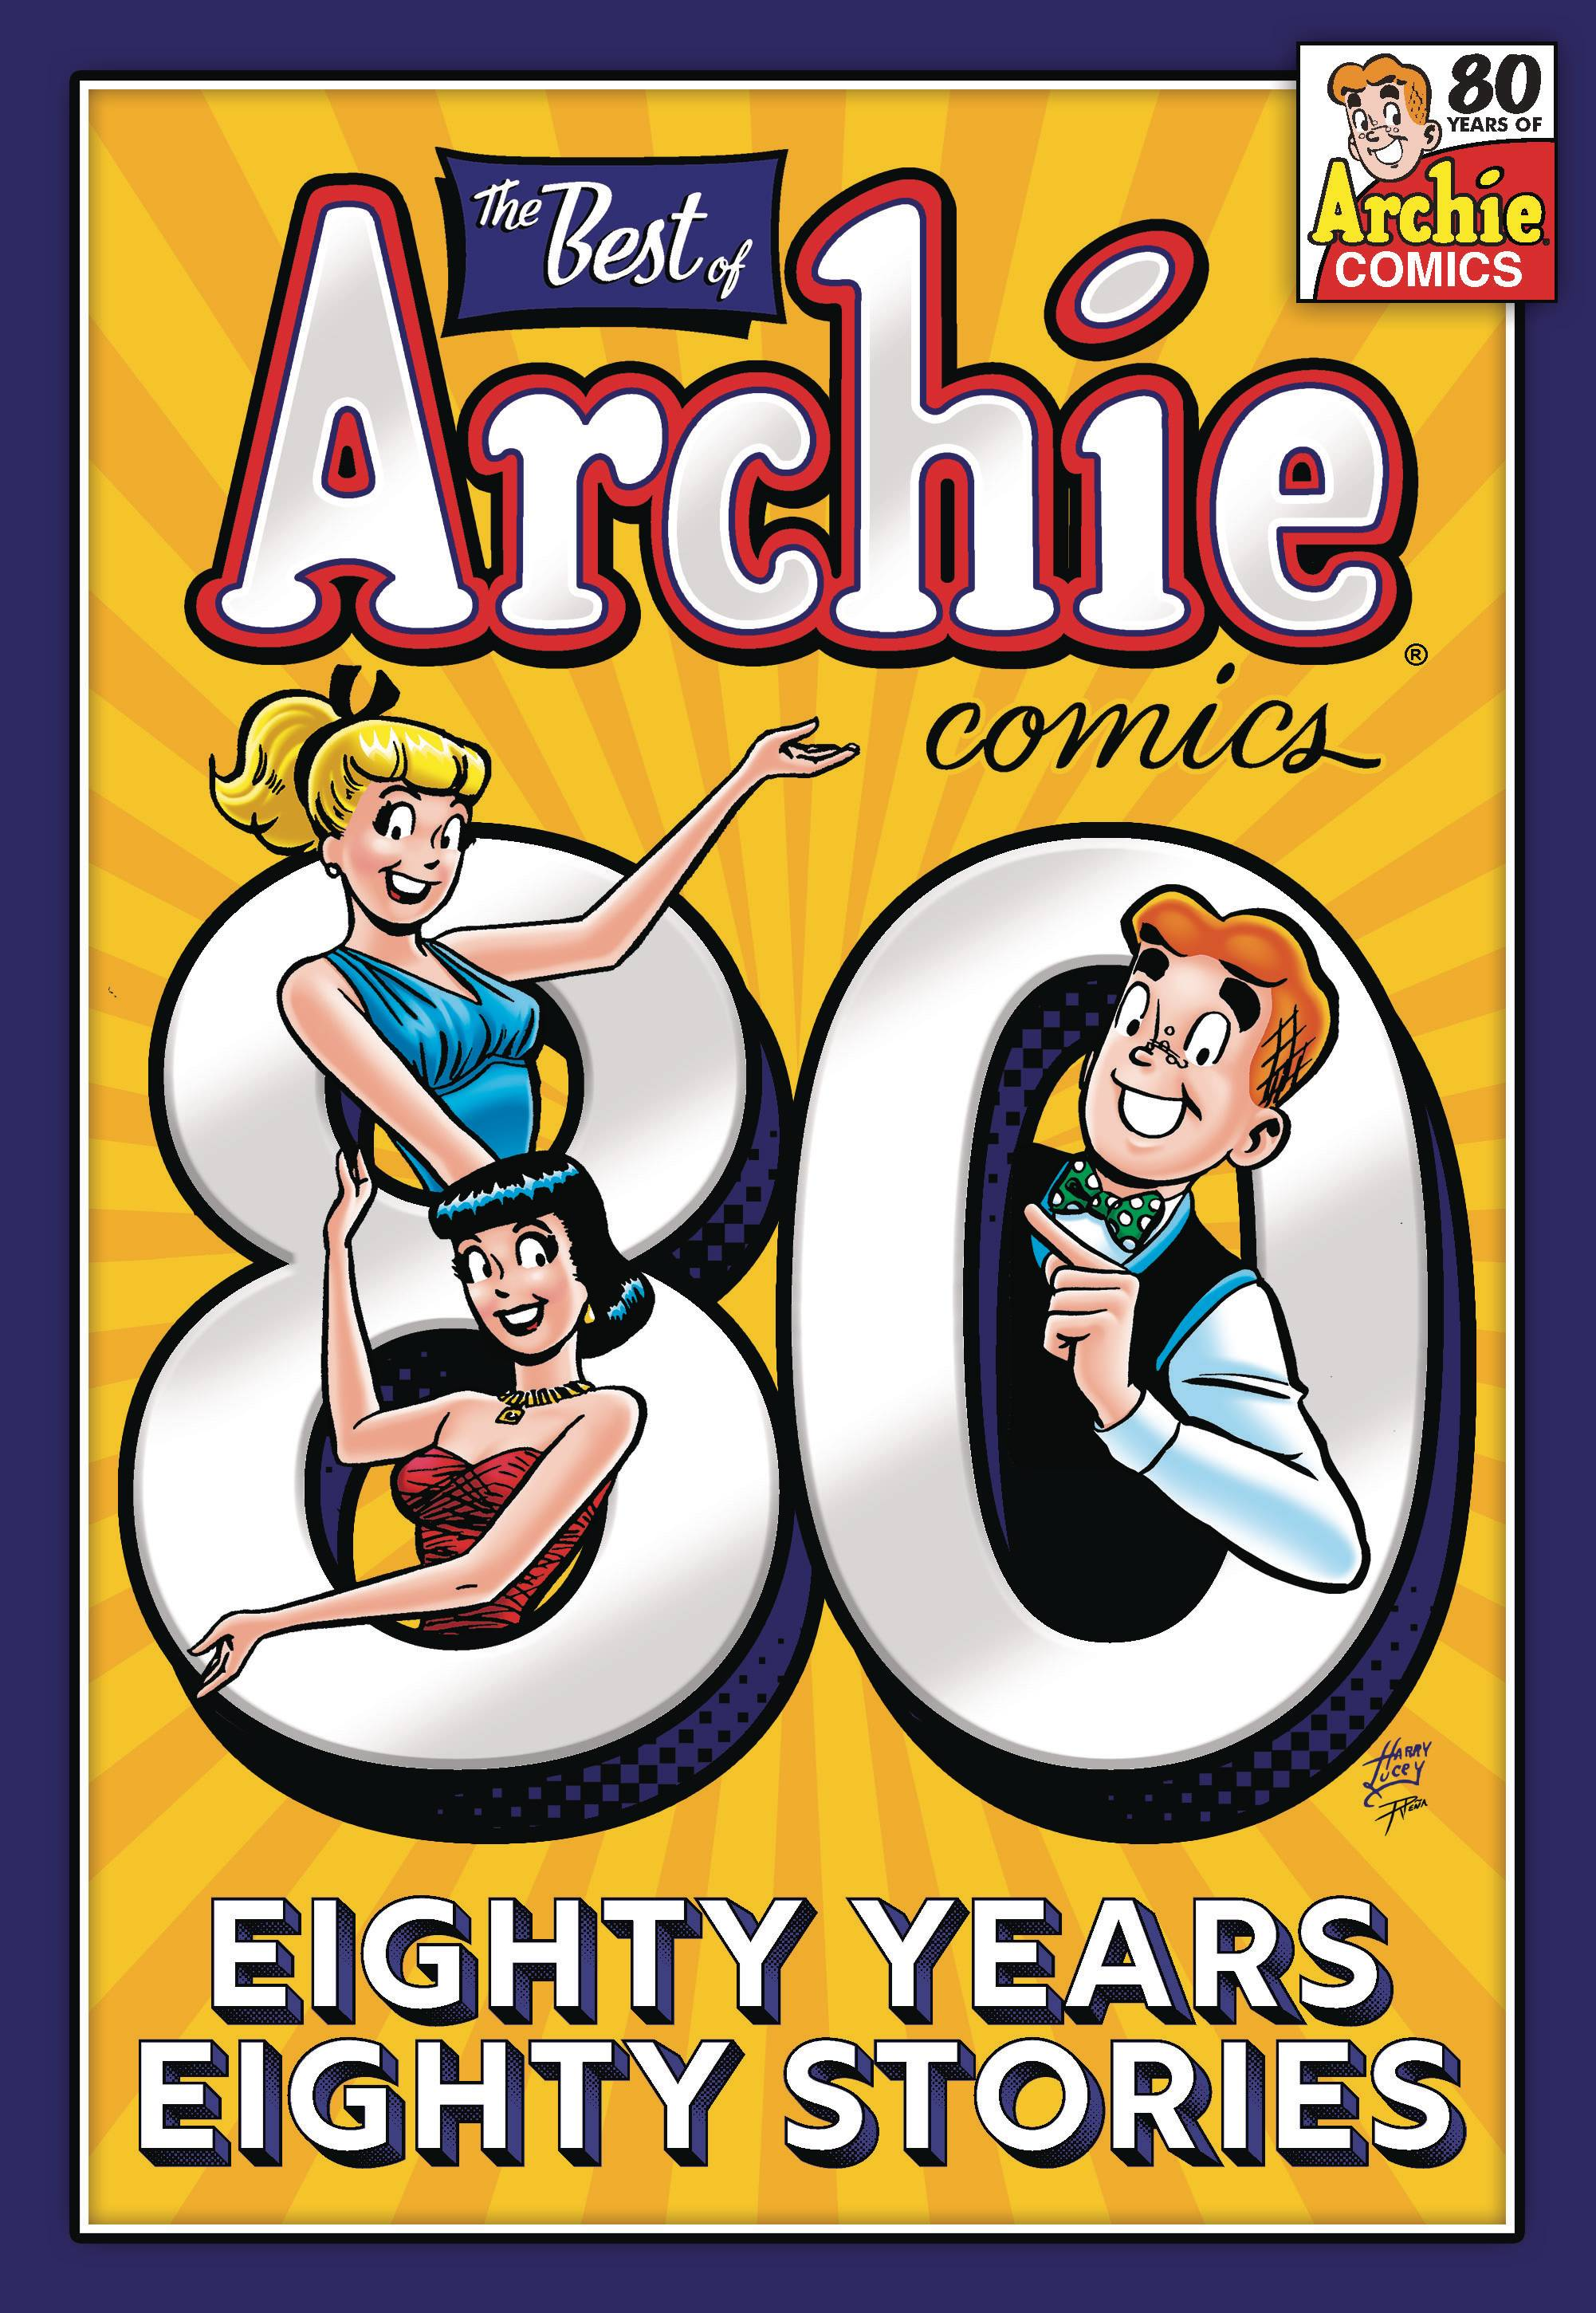 BEST OF ARCHIE COMICS 80 YEARS 80 STORIES TP